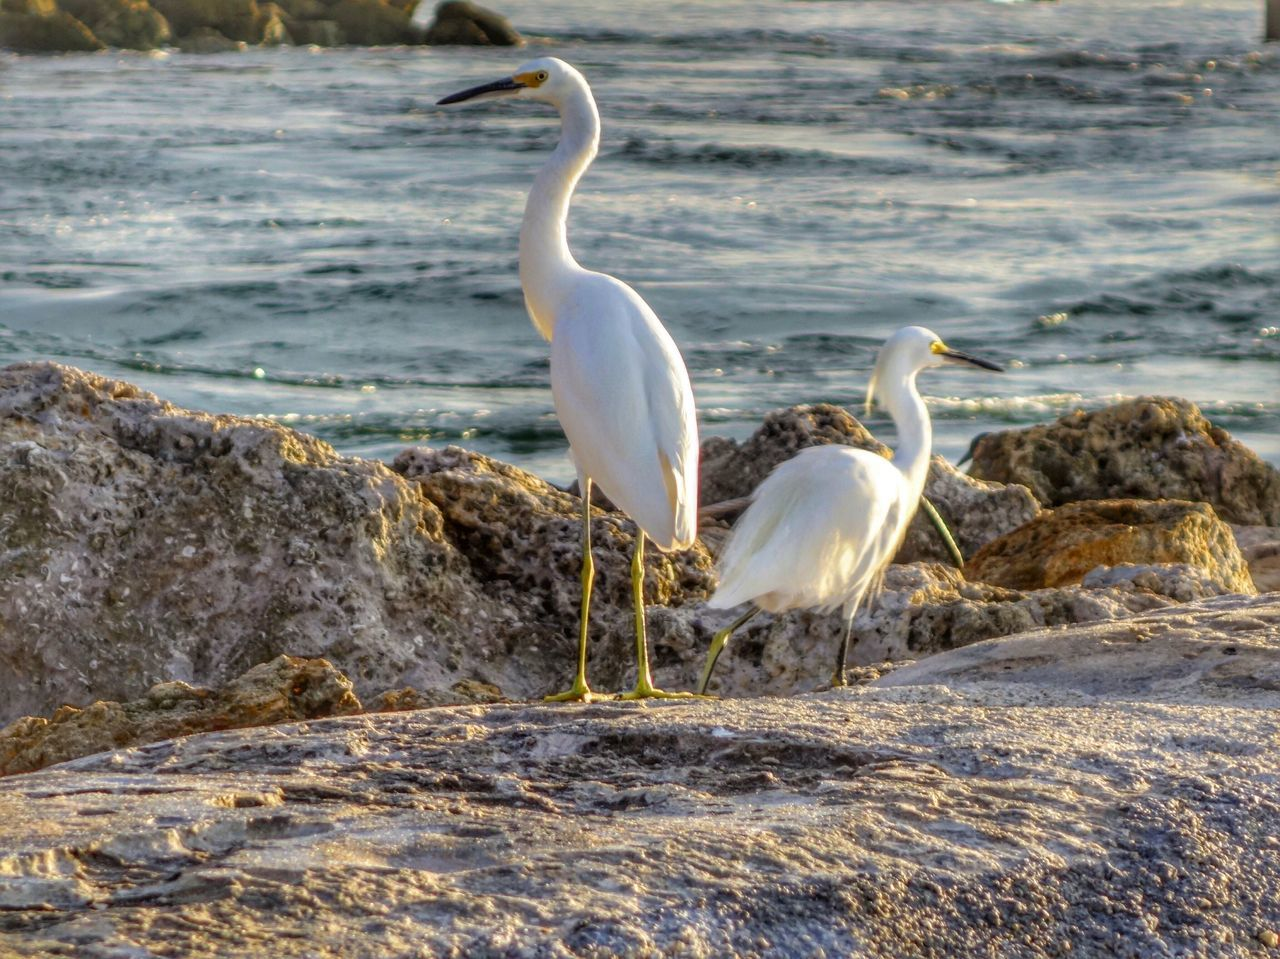 animals in the wild, bird, animal themes, white color, water, rock - object, nature, animal wildlife, great egret, day, lake, egret, one animal, beauty in nature, no people, crane - bird, outdoors, swan